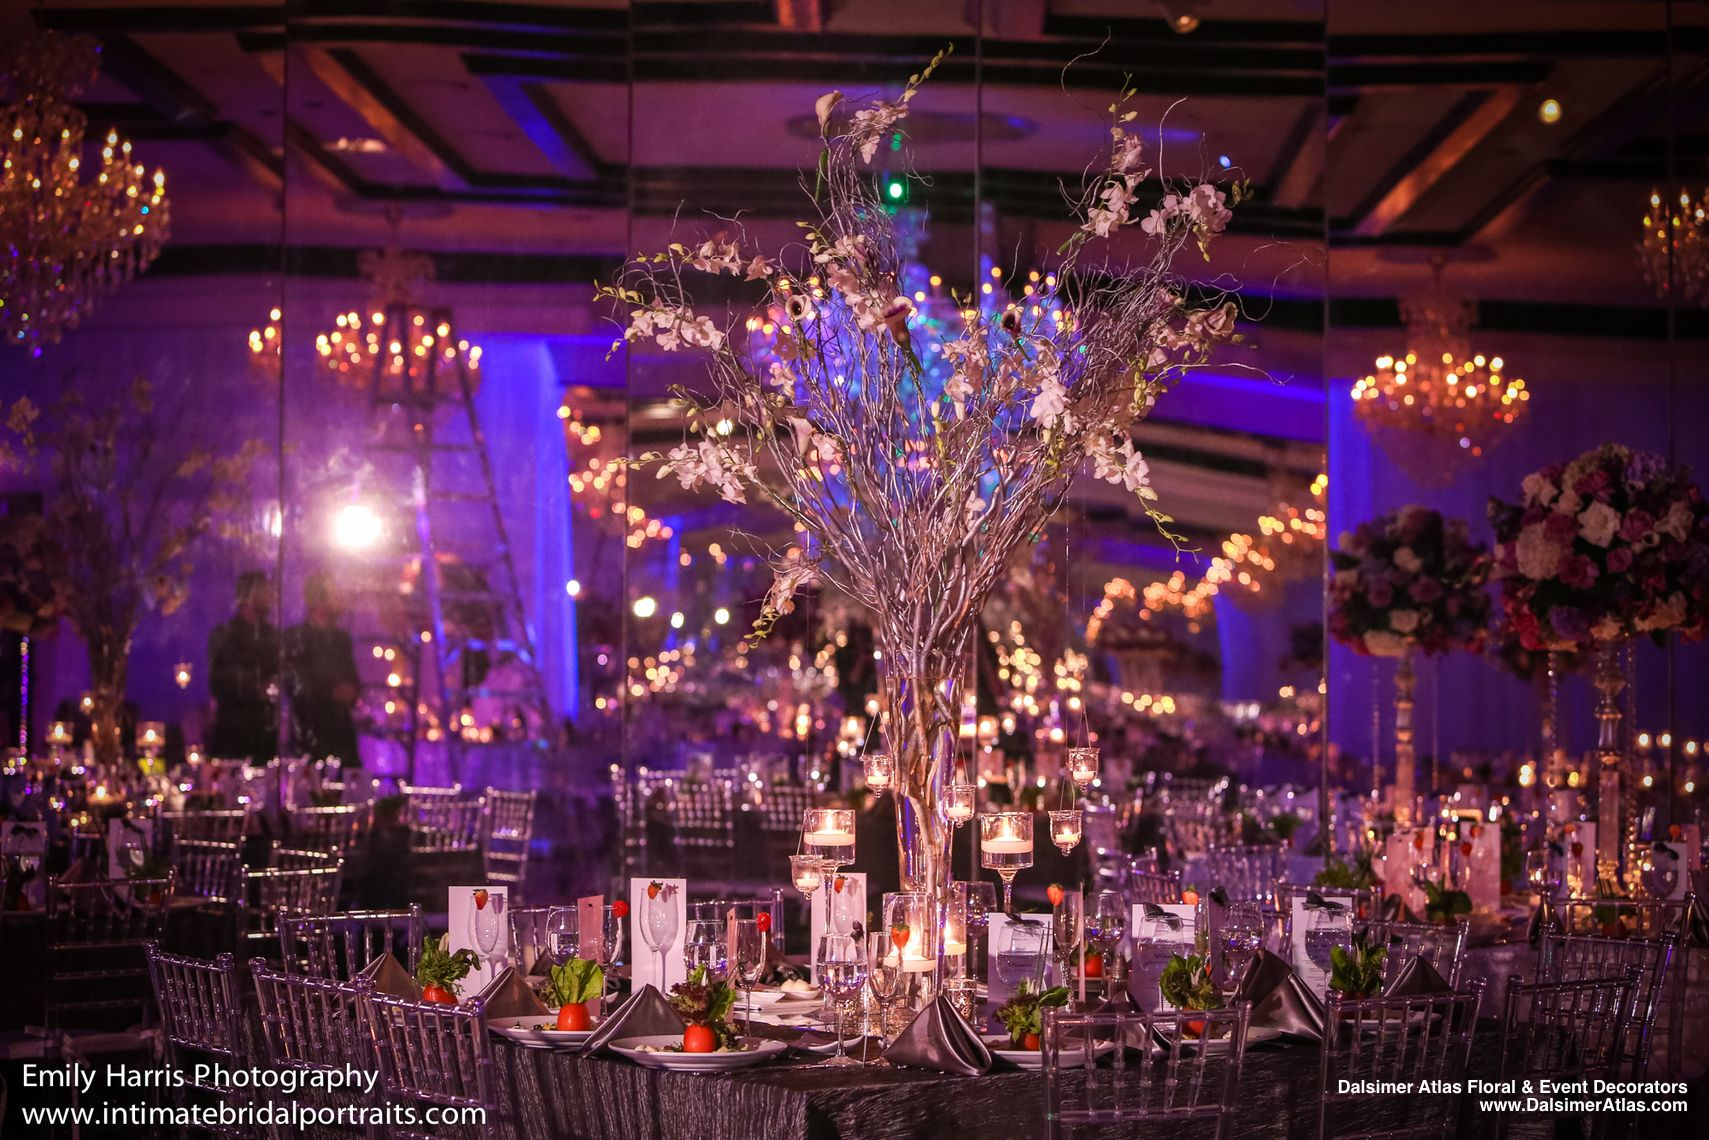 wedding-florist-flowers-decorations-bnai-israel-boca-raton-florida-dalsimer-atlas-24